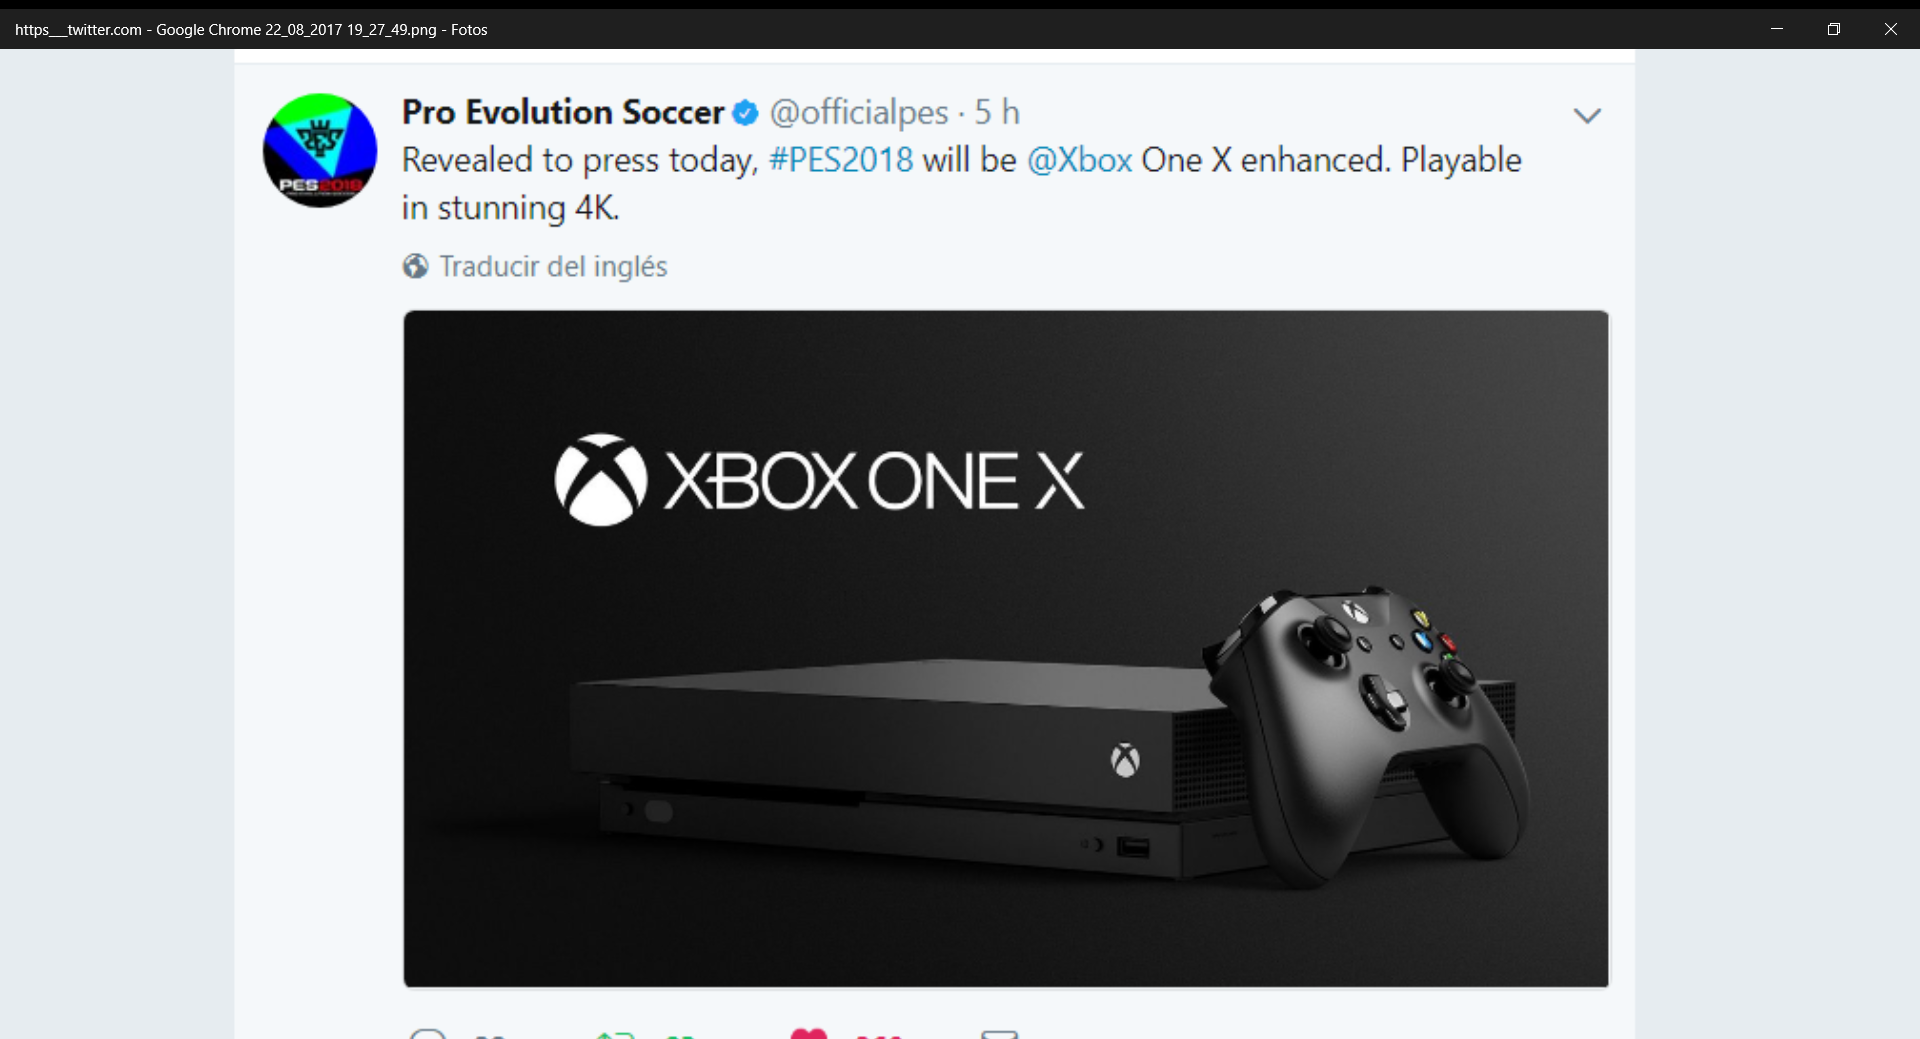 XBOX ONE X 4K native resolution Enhanced with PES 18.